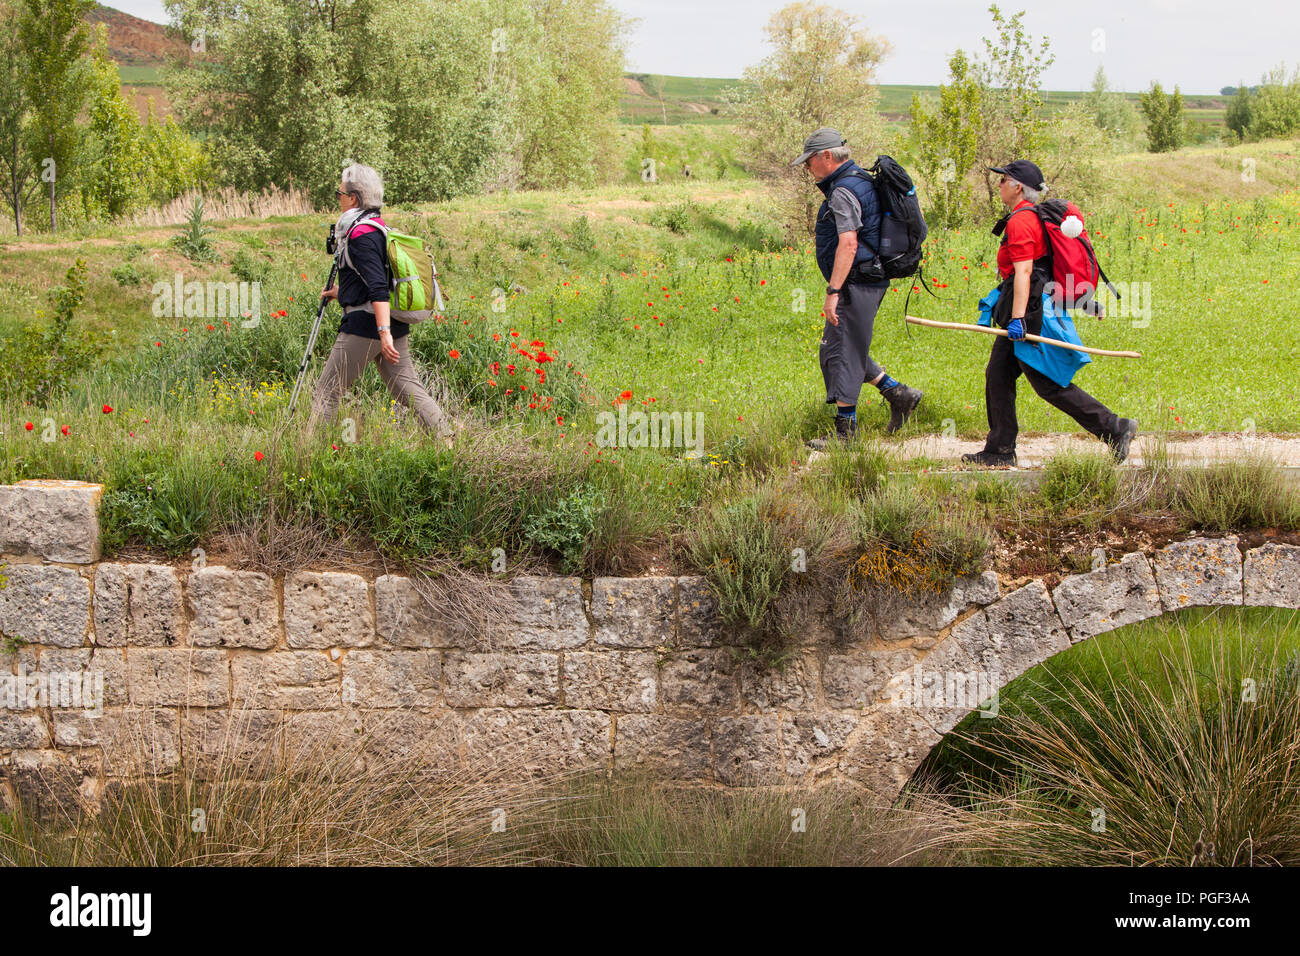 Pilgrims walkers walking along the Roman Causeway on the way of St James the Camino de Santiago footpath between Castrojeriz and Fromista - Stock Image